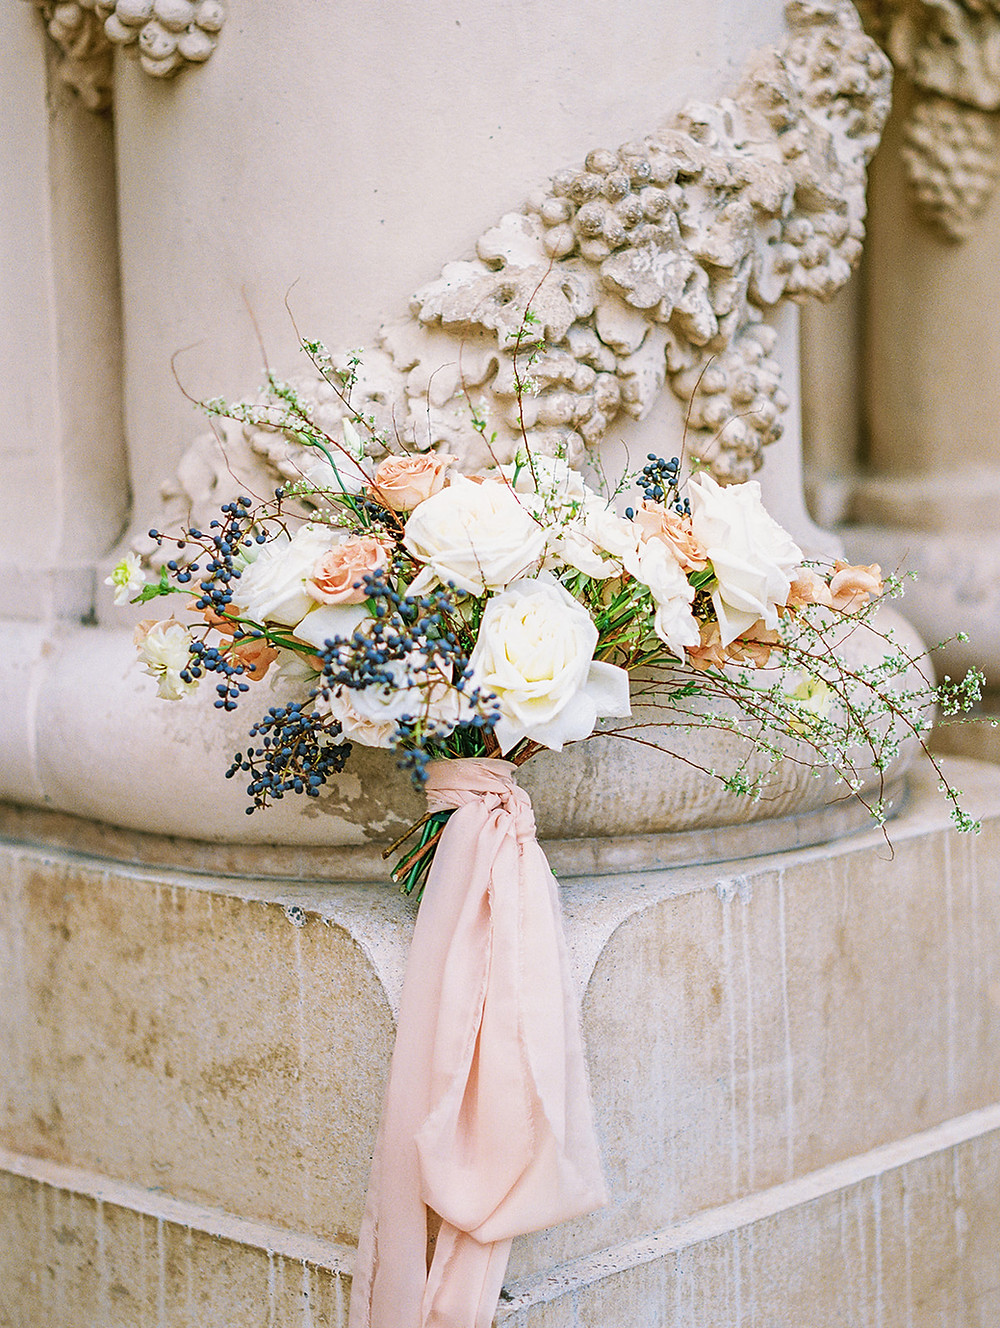 Whimsical and Neutral Spring Time Bouquet for a 1920s Inspired Wedding at Balboa Park San Diego Beautiful, whimsical and organic Spring time wedding flowers with neutral color palette. This gorgeous bridal bouquet was inspired by the 1920s and the venue: Balboa Park. We played with the neutral color palette with a punch of peach using garden roses, spirea and privet berry. #sprirea #spireabouquet #springbouquet #springweddingflowers #sandiegoflorist #sandiegoweddingflorist #neutralweddingpalette #peachweddingflowers